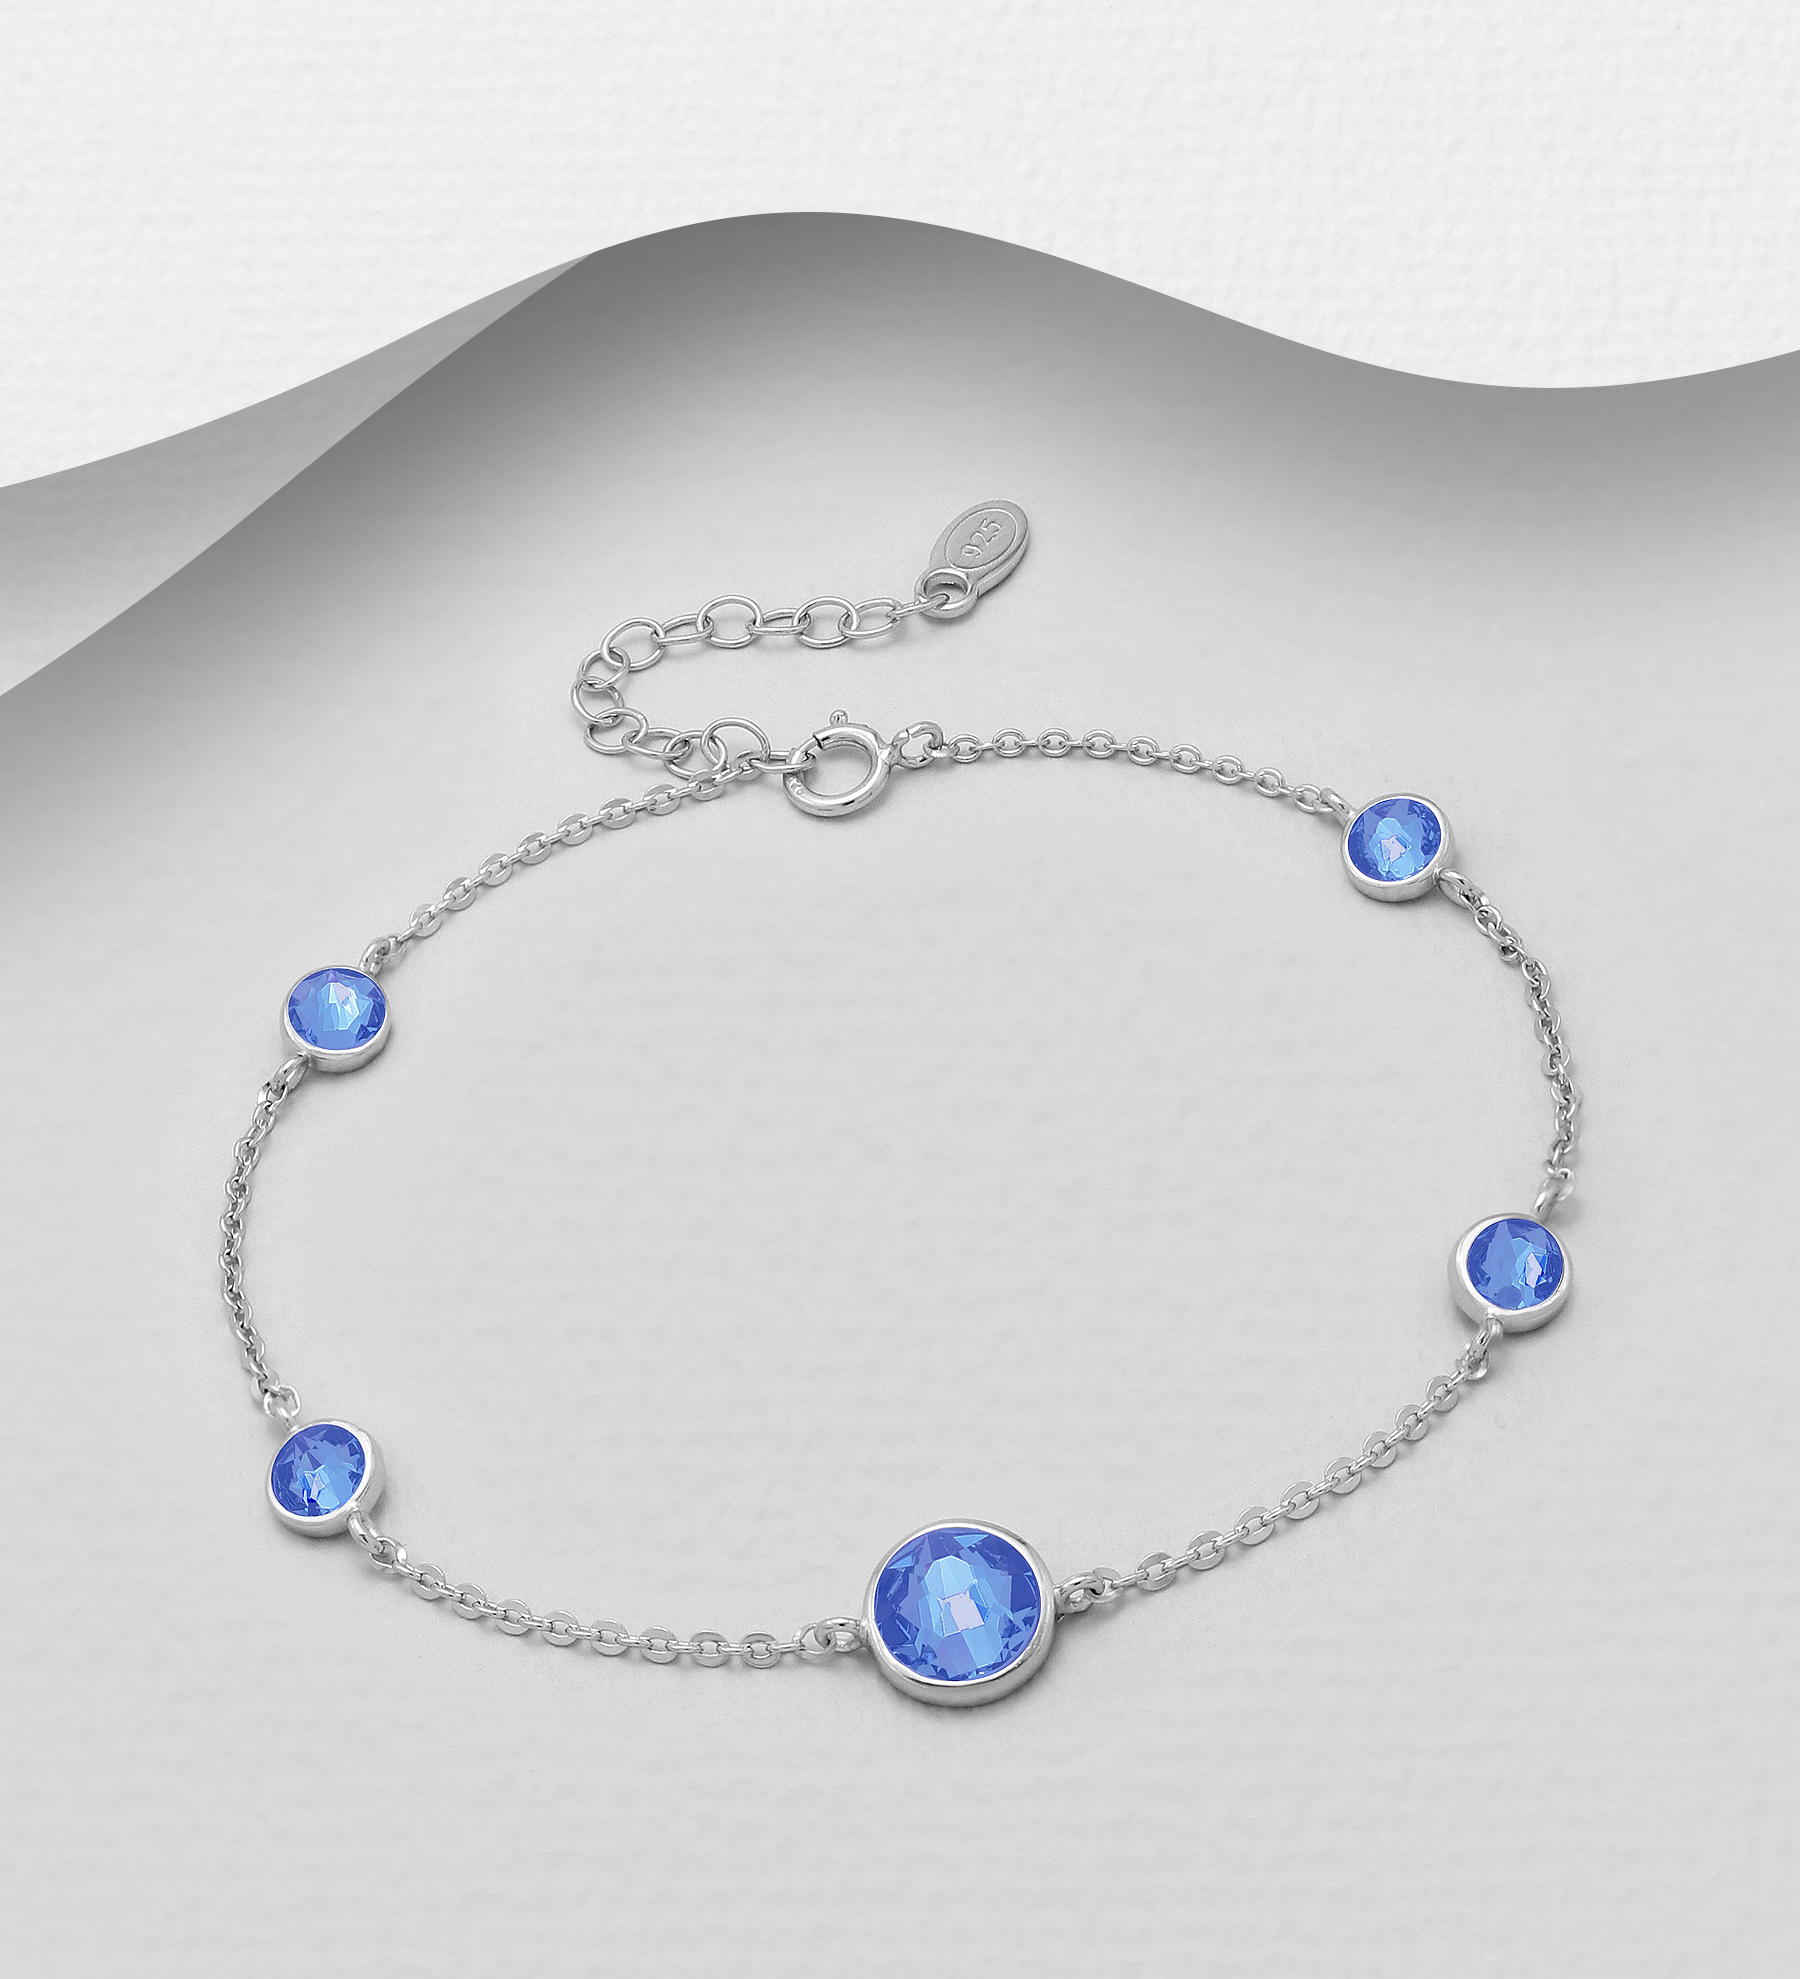 1583-357 - Sparkle by 7K - 925 Sterling Silver Bracelet Decorated With Verifiable Authentic Swarovski Crystals